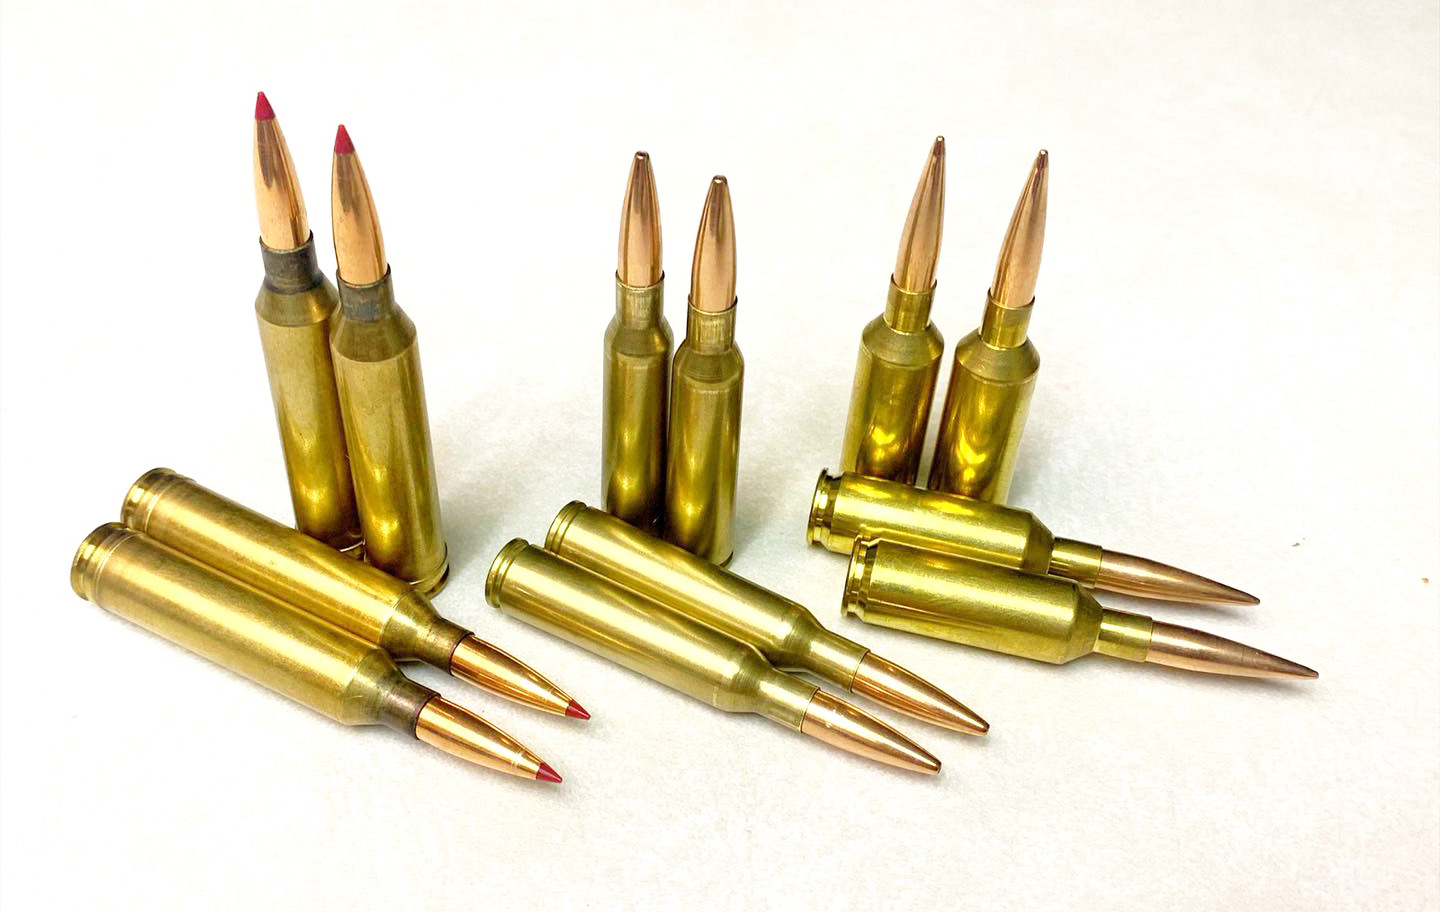 My Top Five Cartridges For Long Range Shooting